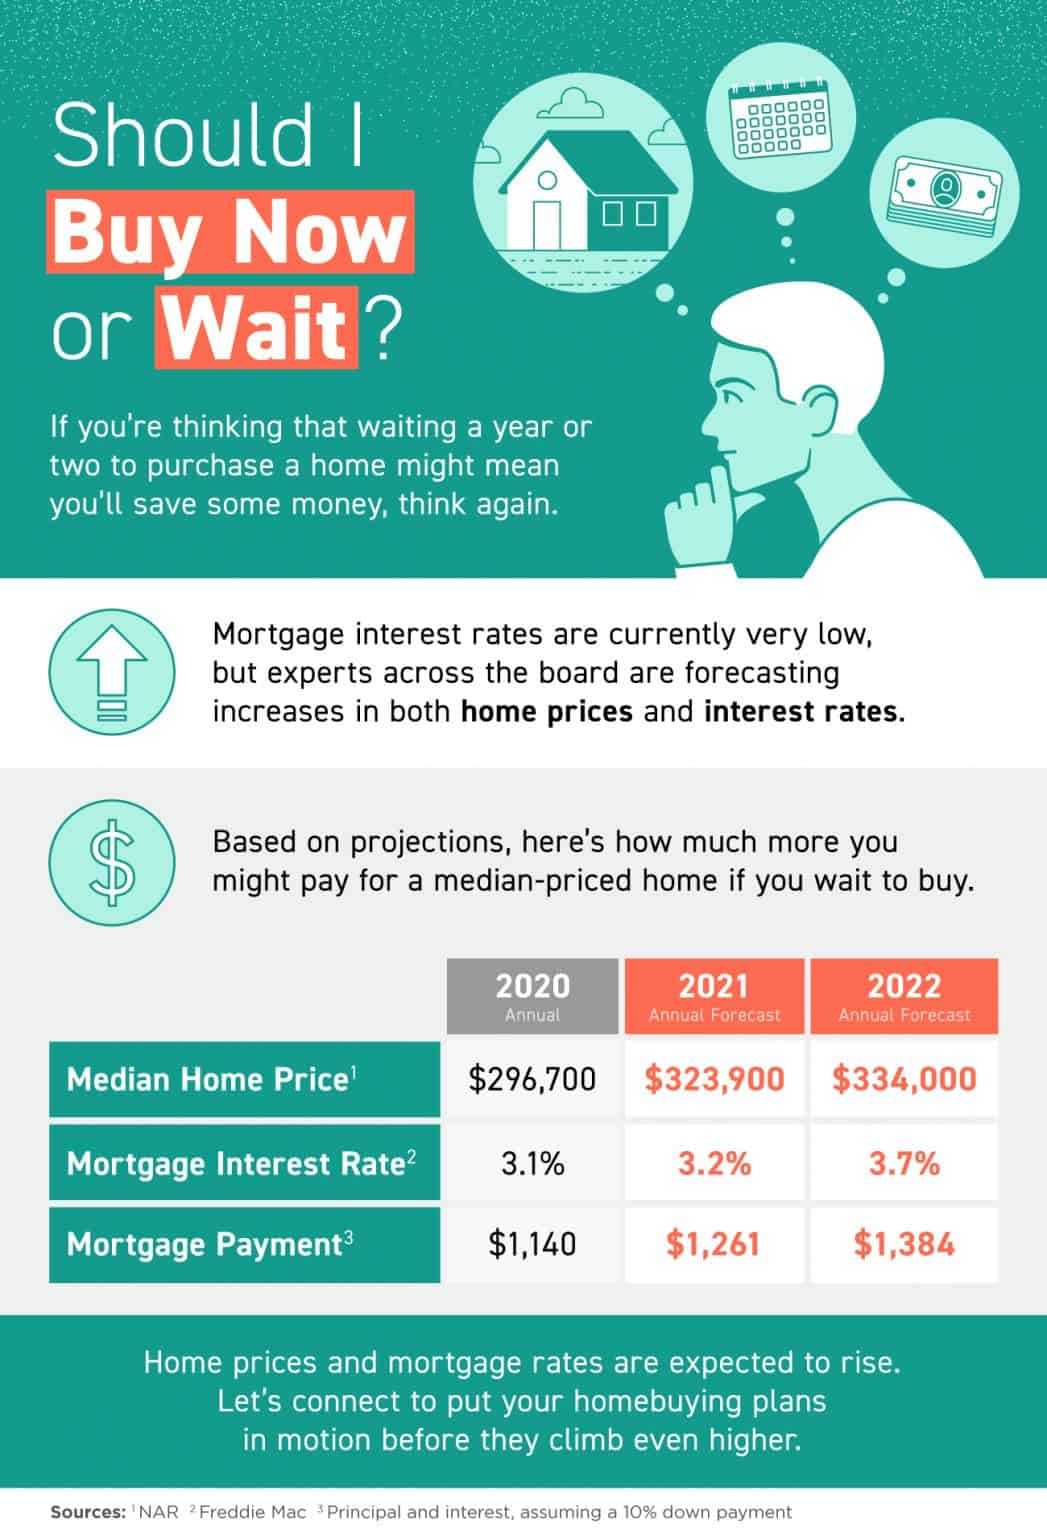 Should I Buy Now or Wait [INFOGRAPHIC]